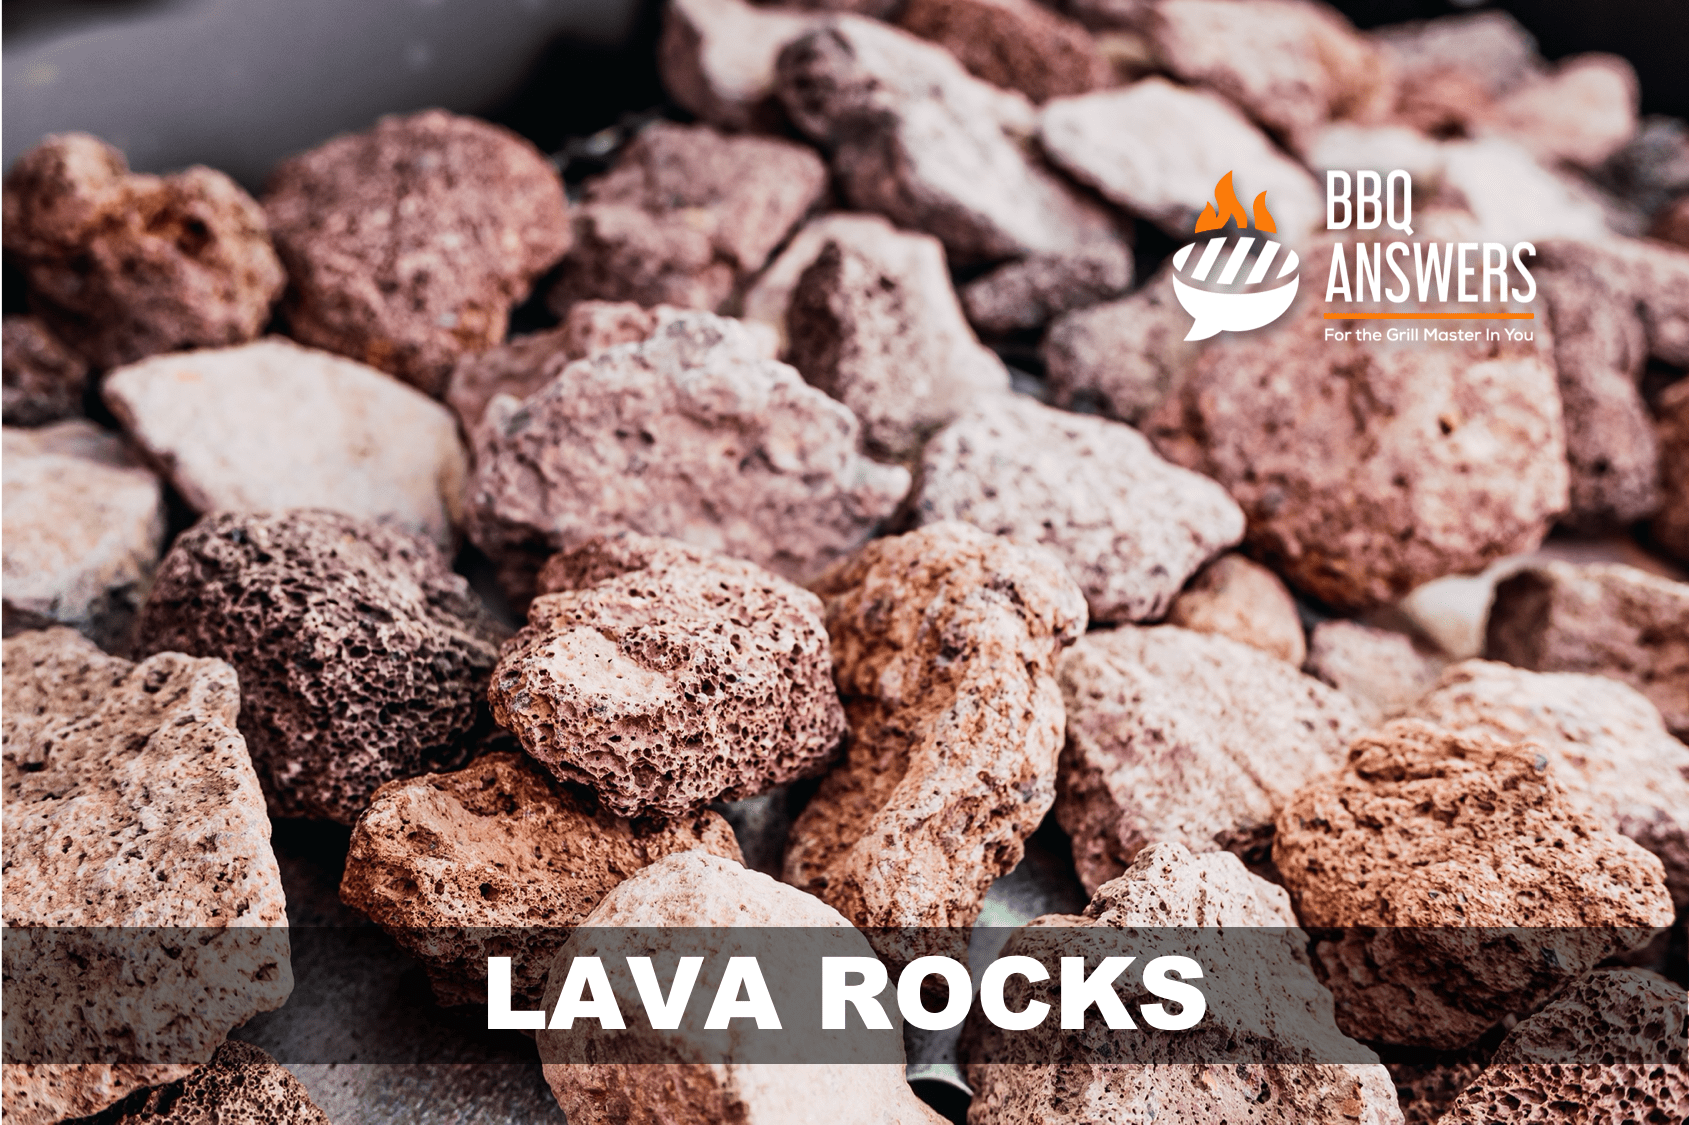 What are BBQ Lava Rocks? Guide to Using Lava Rocks